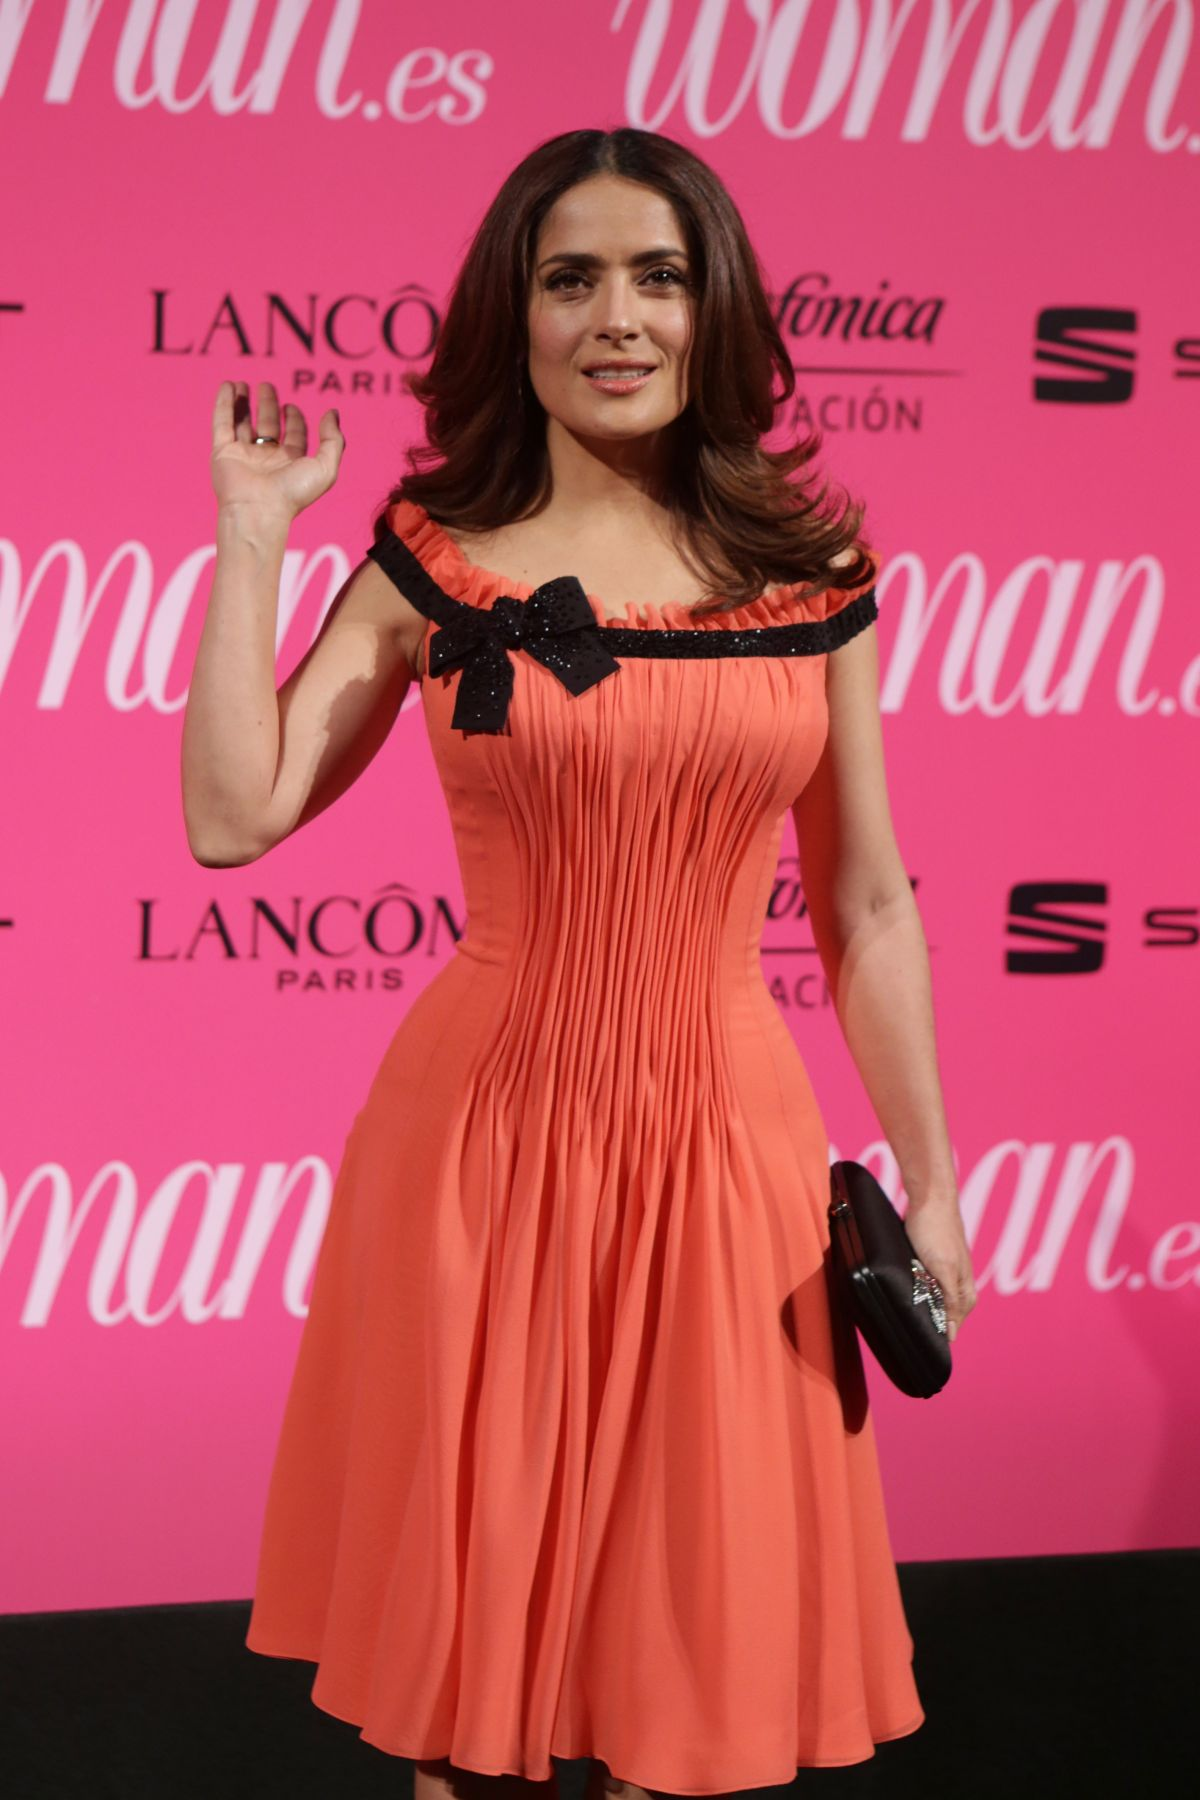 SALMA HAYEK at Woman Magazine Awards in Madrid